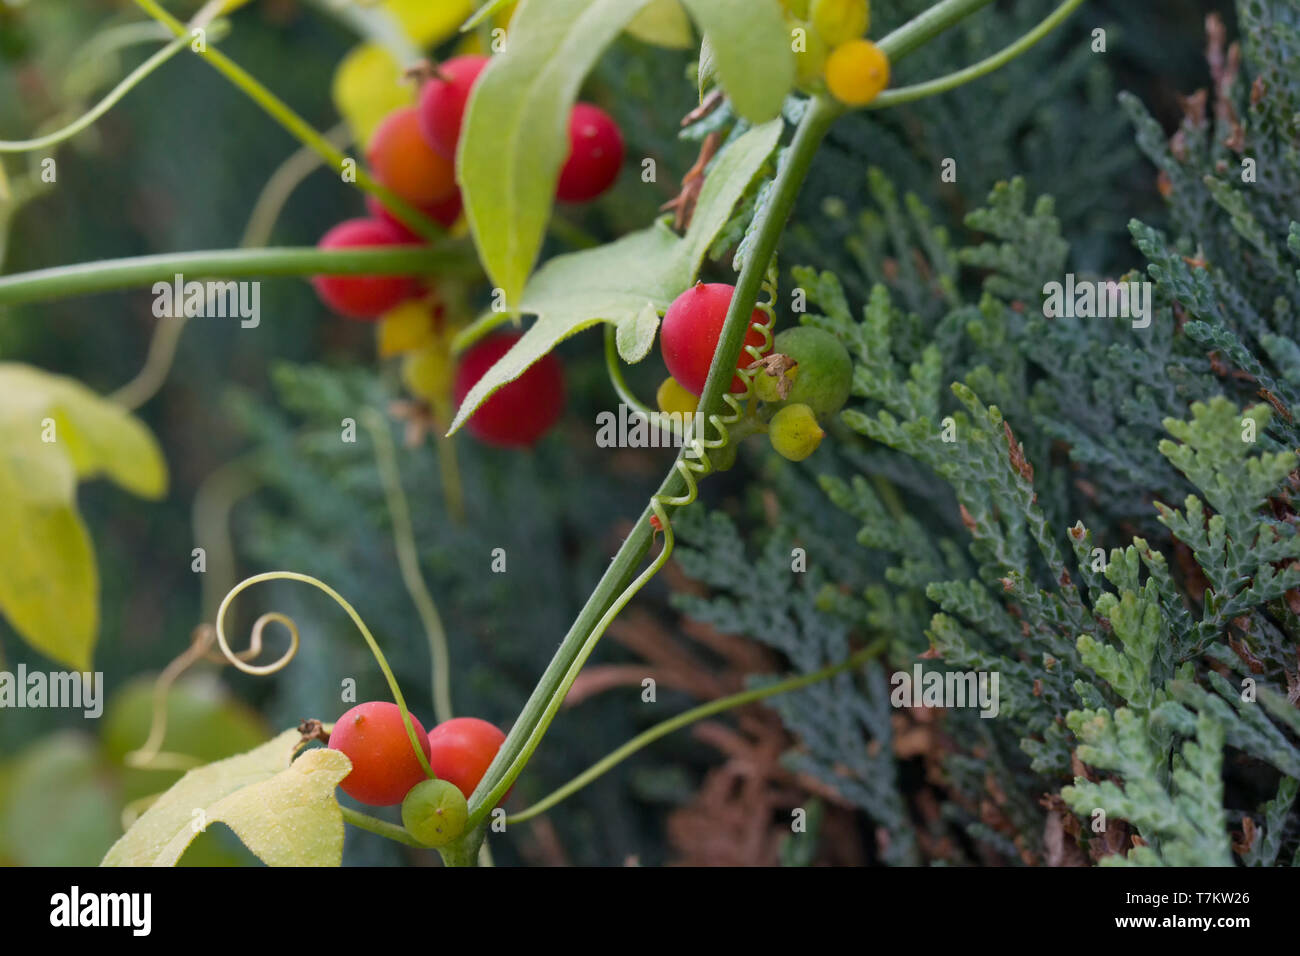 Bryonia dioica, known by the common names red bryony and white bryony - Stock Image